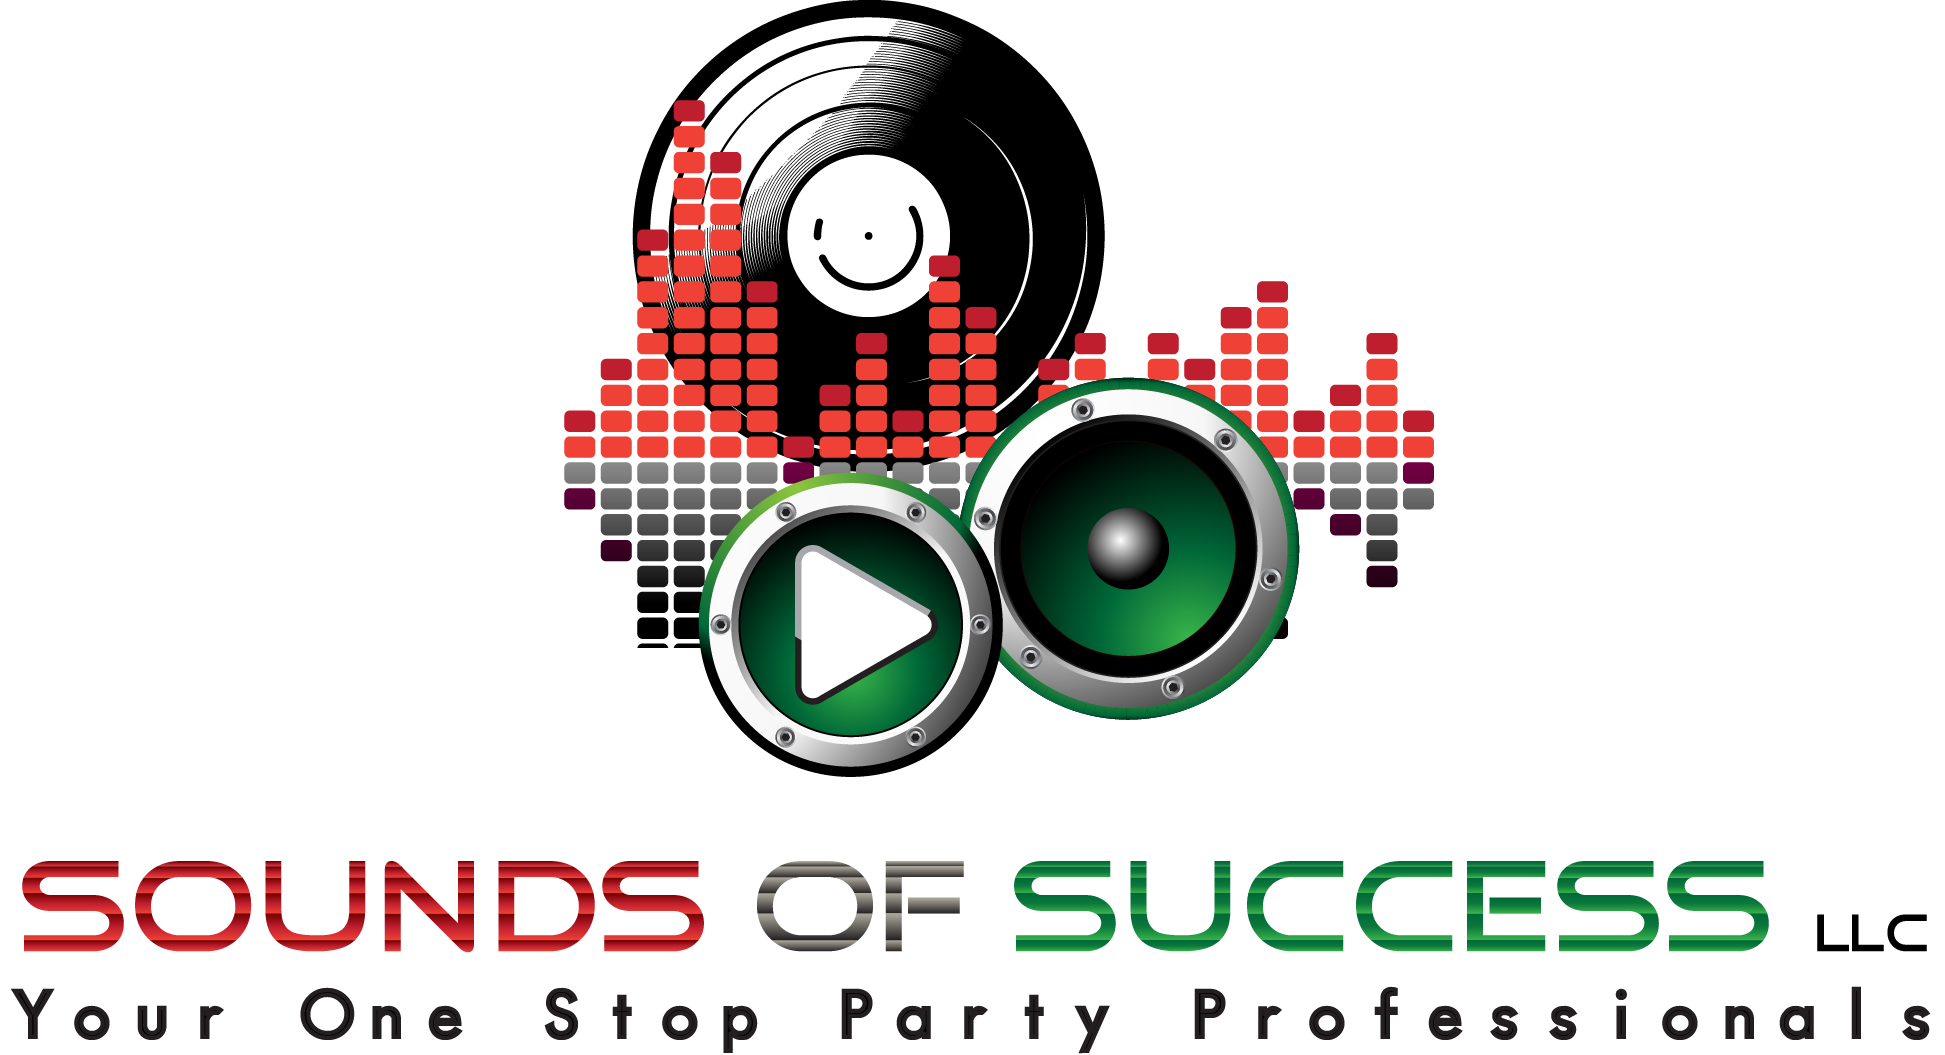 Sounds_of_Success_LLC_HQ.png